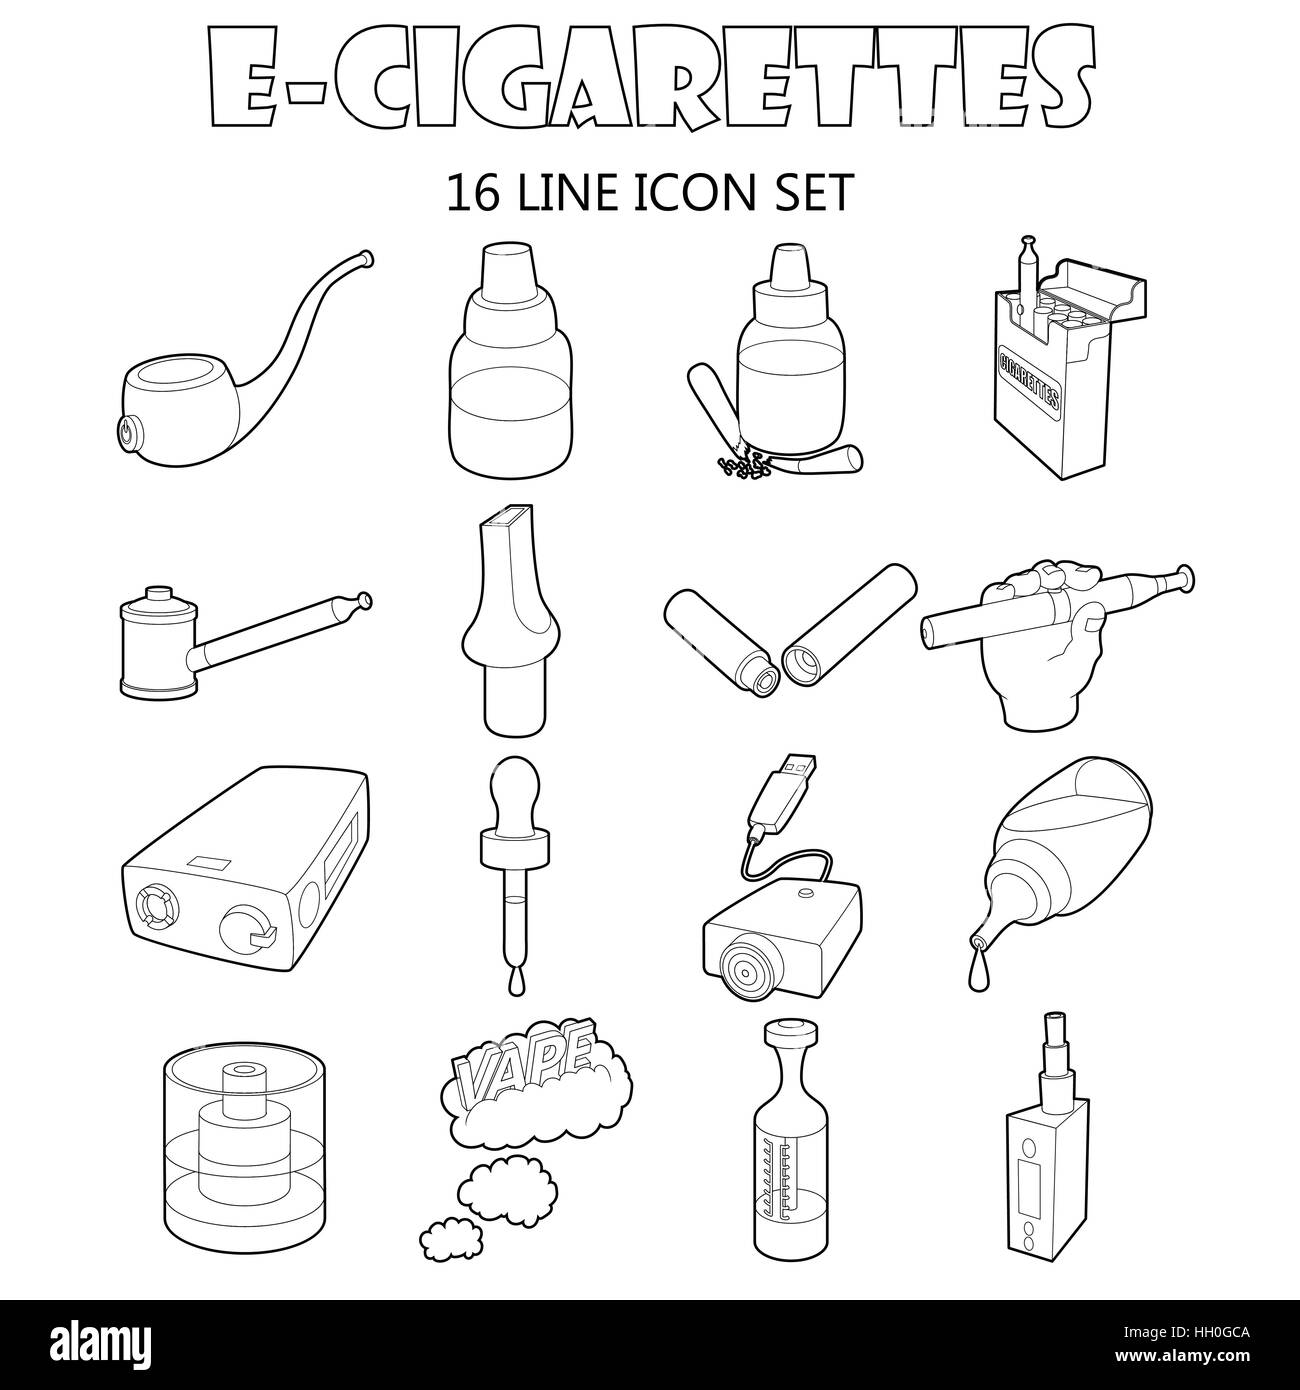 E-cigarettes icons set, outline style Stock Vector